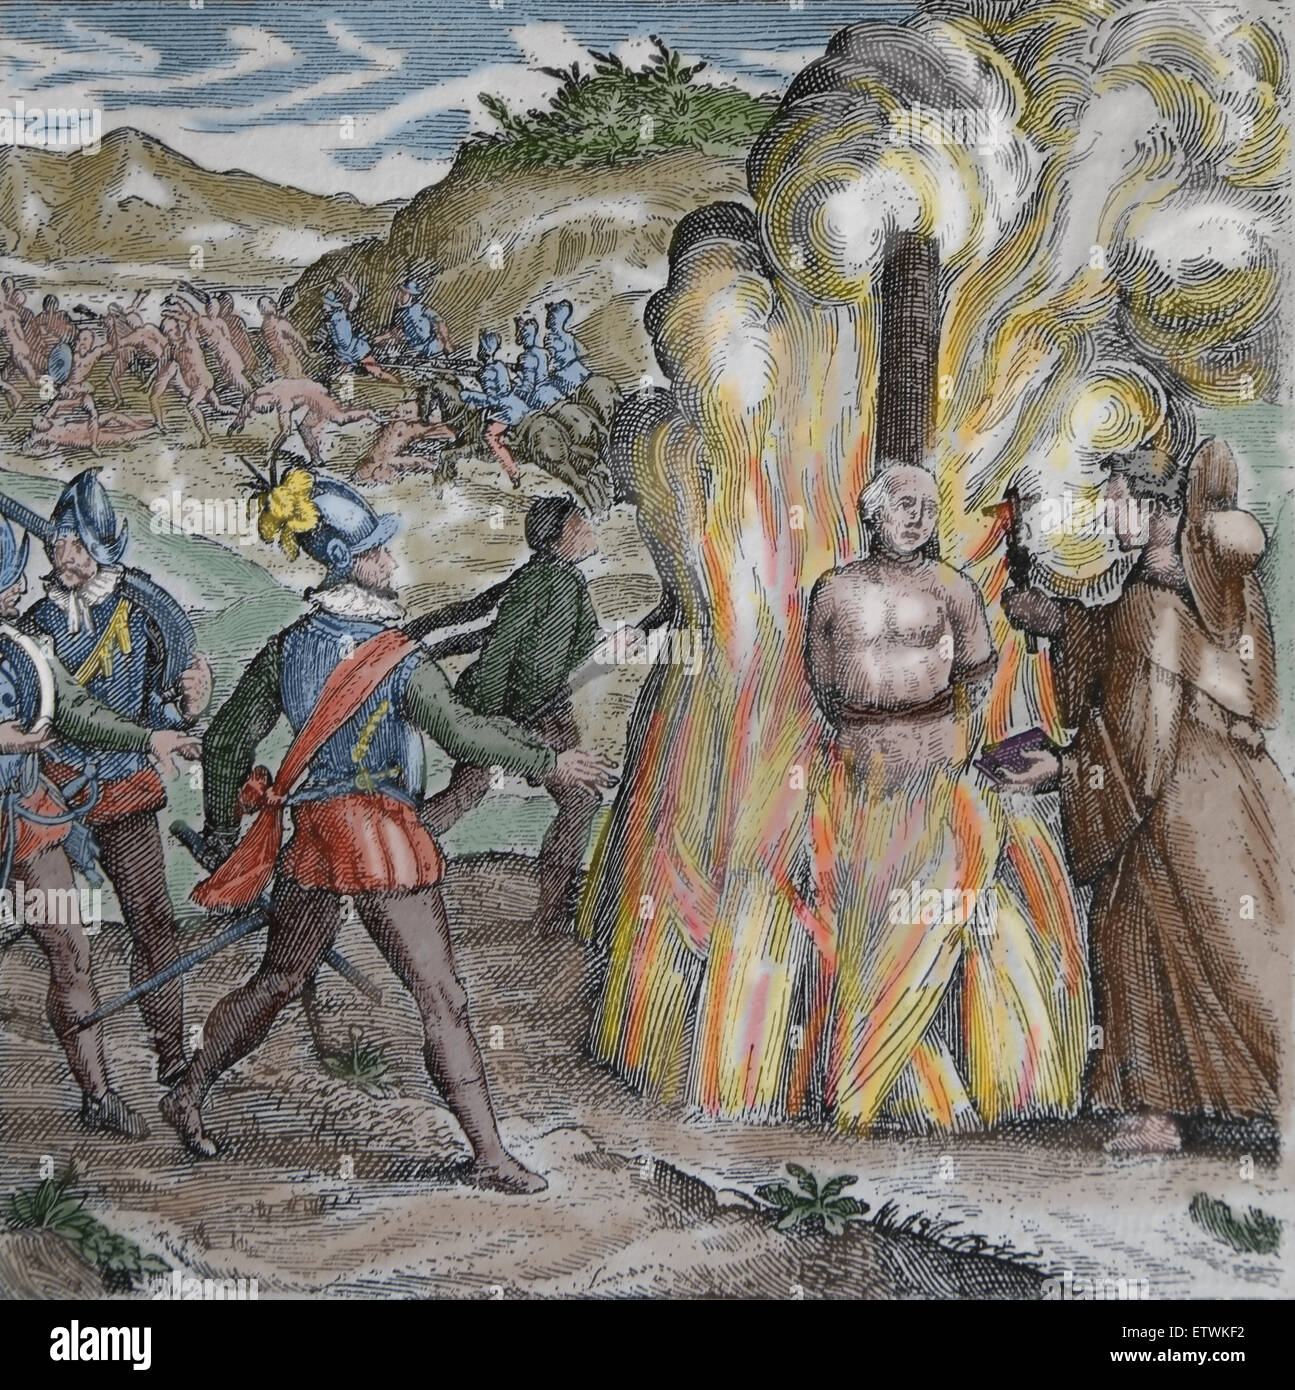 Bartolome de las Casas, Destruction of the Indies. Taino chief Hatuey being burnt by Spanish soldiers. Color. Engraving. - Stock Image